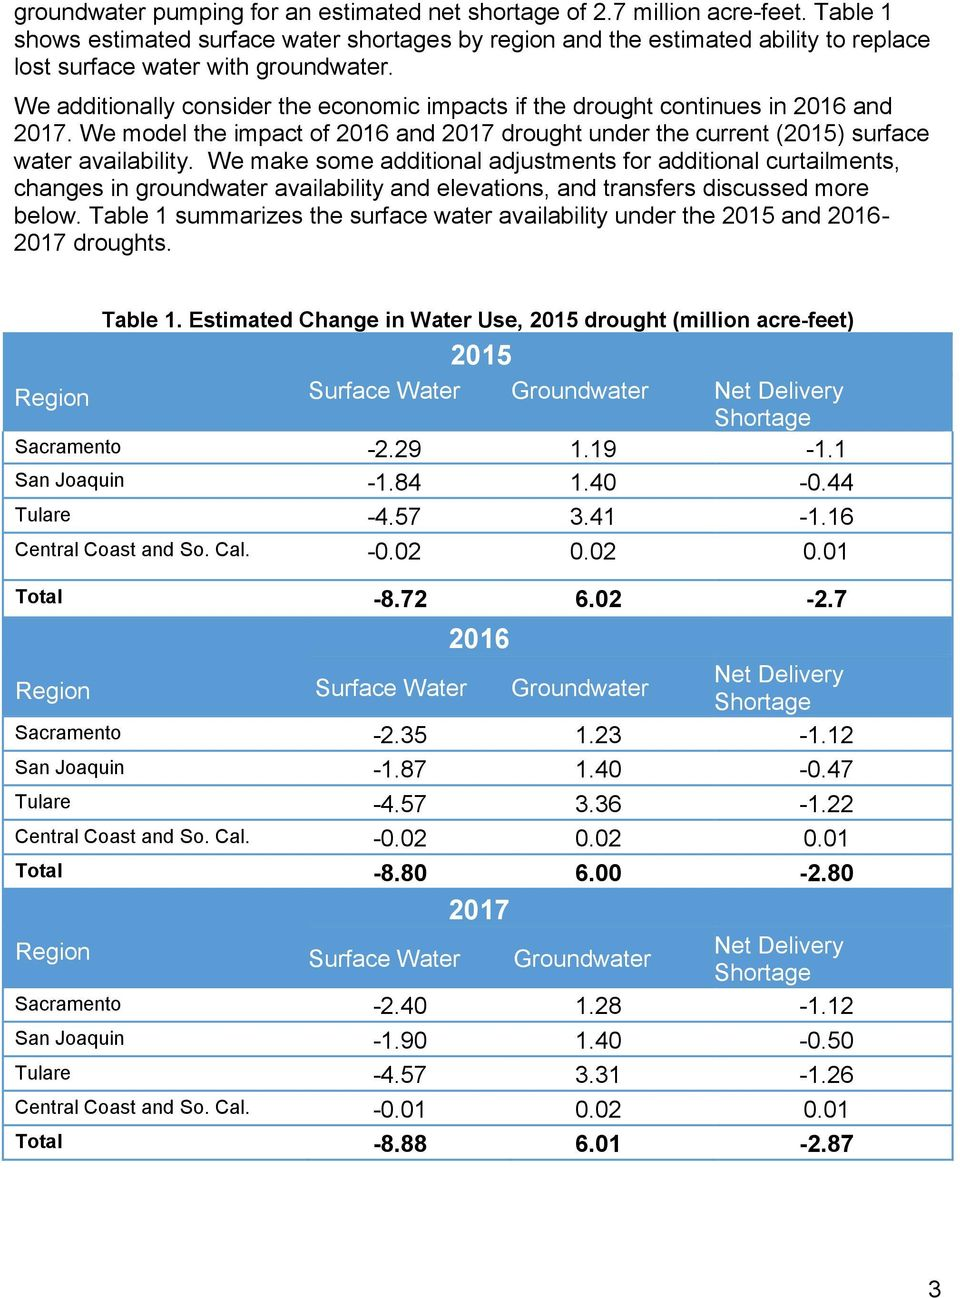 We additionally consider the economic impacts if the drought continues in 2016 and 2017. We model the impact of 2016 and 2017 drought under the current (2015) surface water availability.